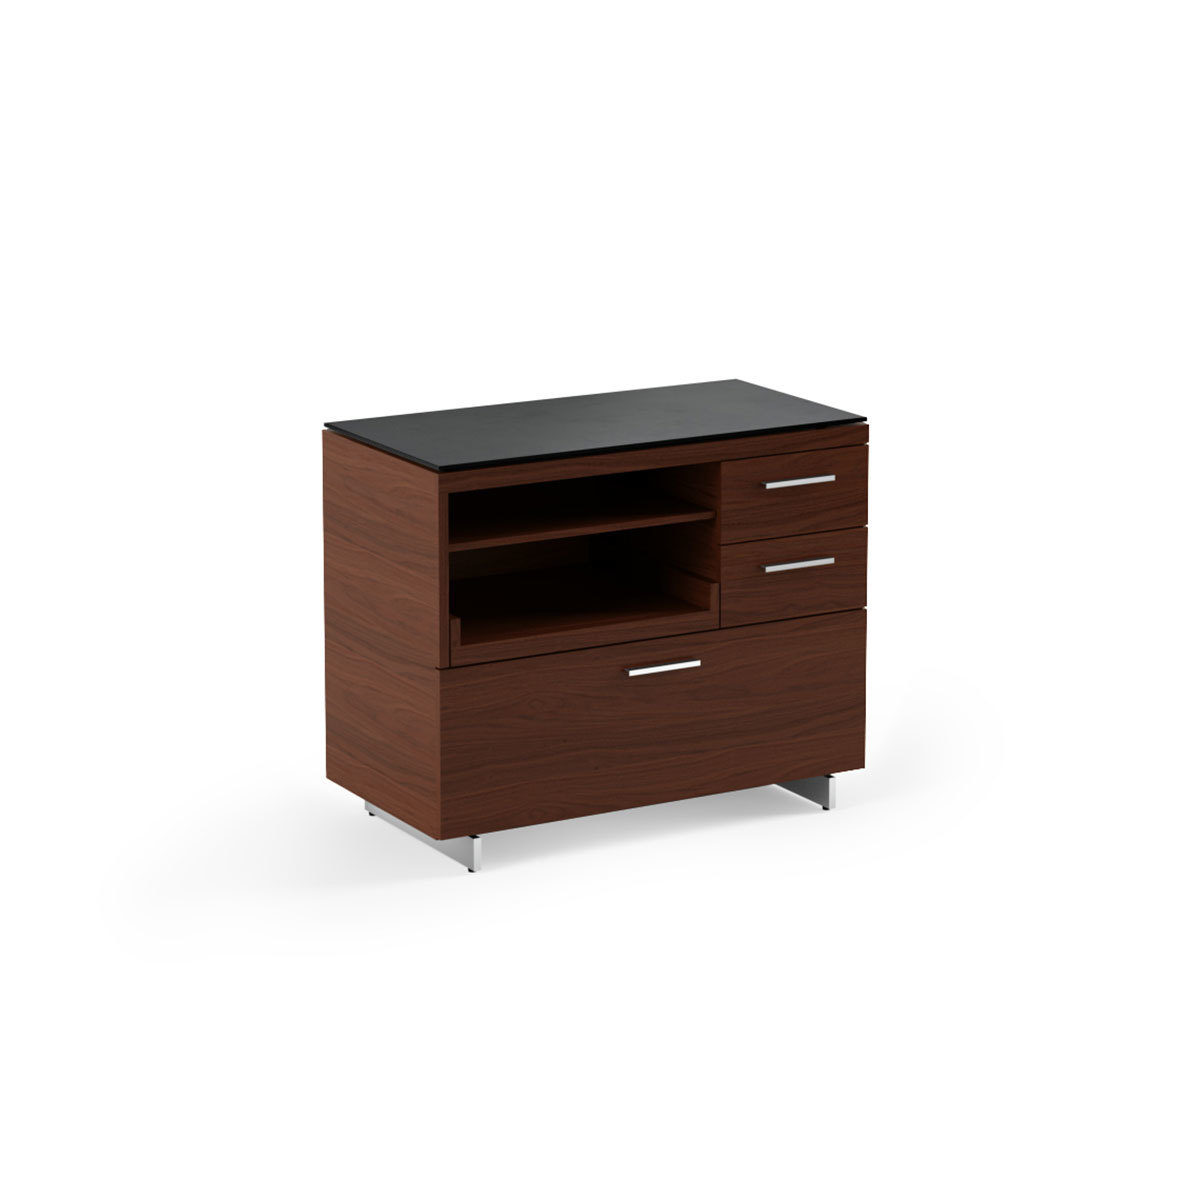 ... Office Furniture Features Video; About Finishes